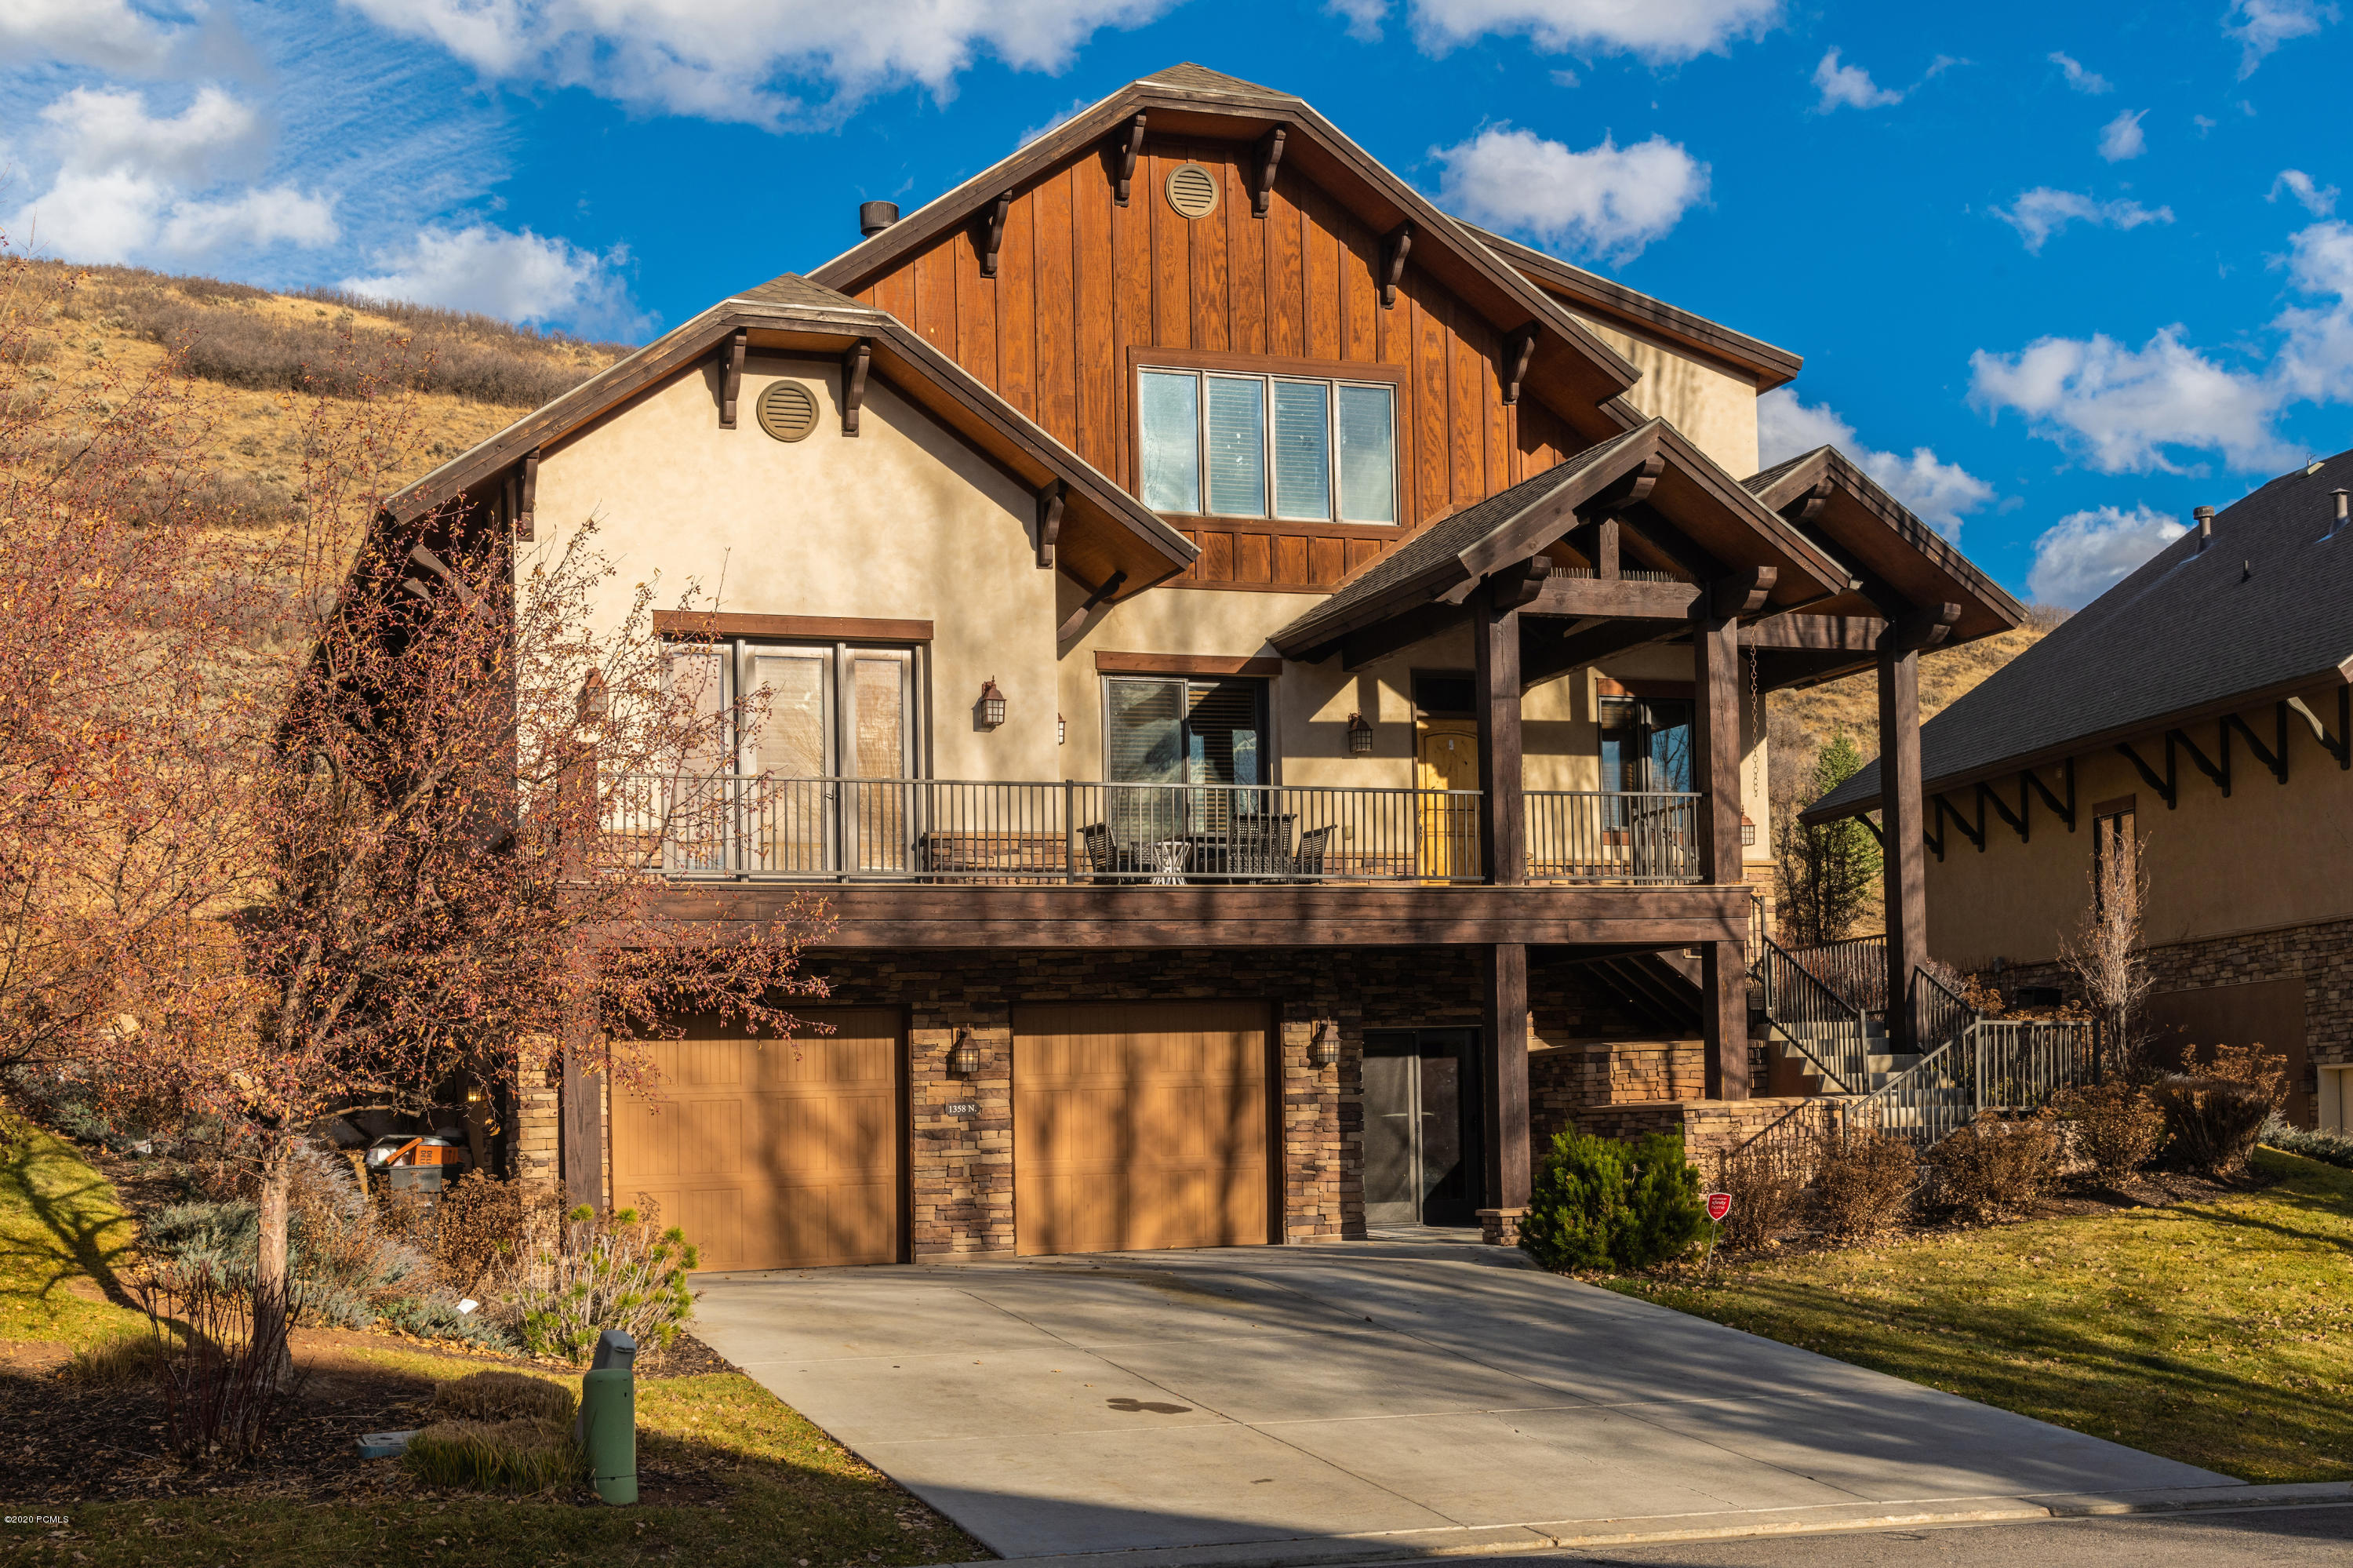 1358 Montaban Way, Midway, Utah 84049, 5 Bedrooms Bedrooms, ,4 BathroomsBathrooms,Single Family,For Sale,Montaban,12004504